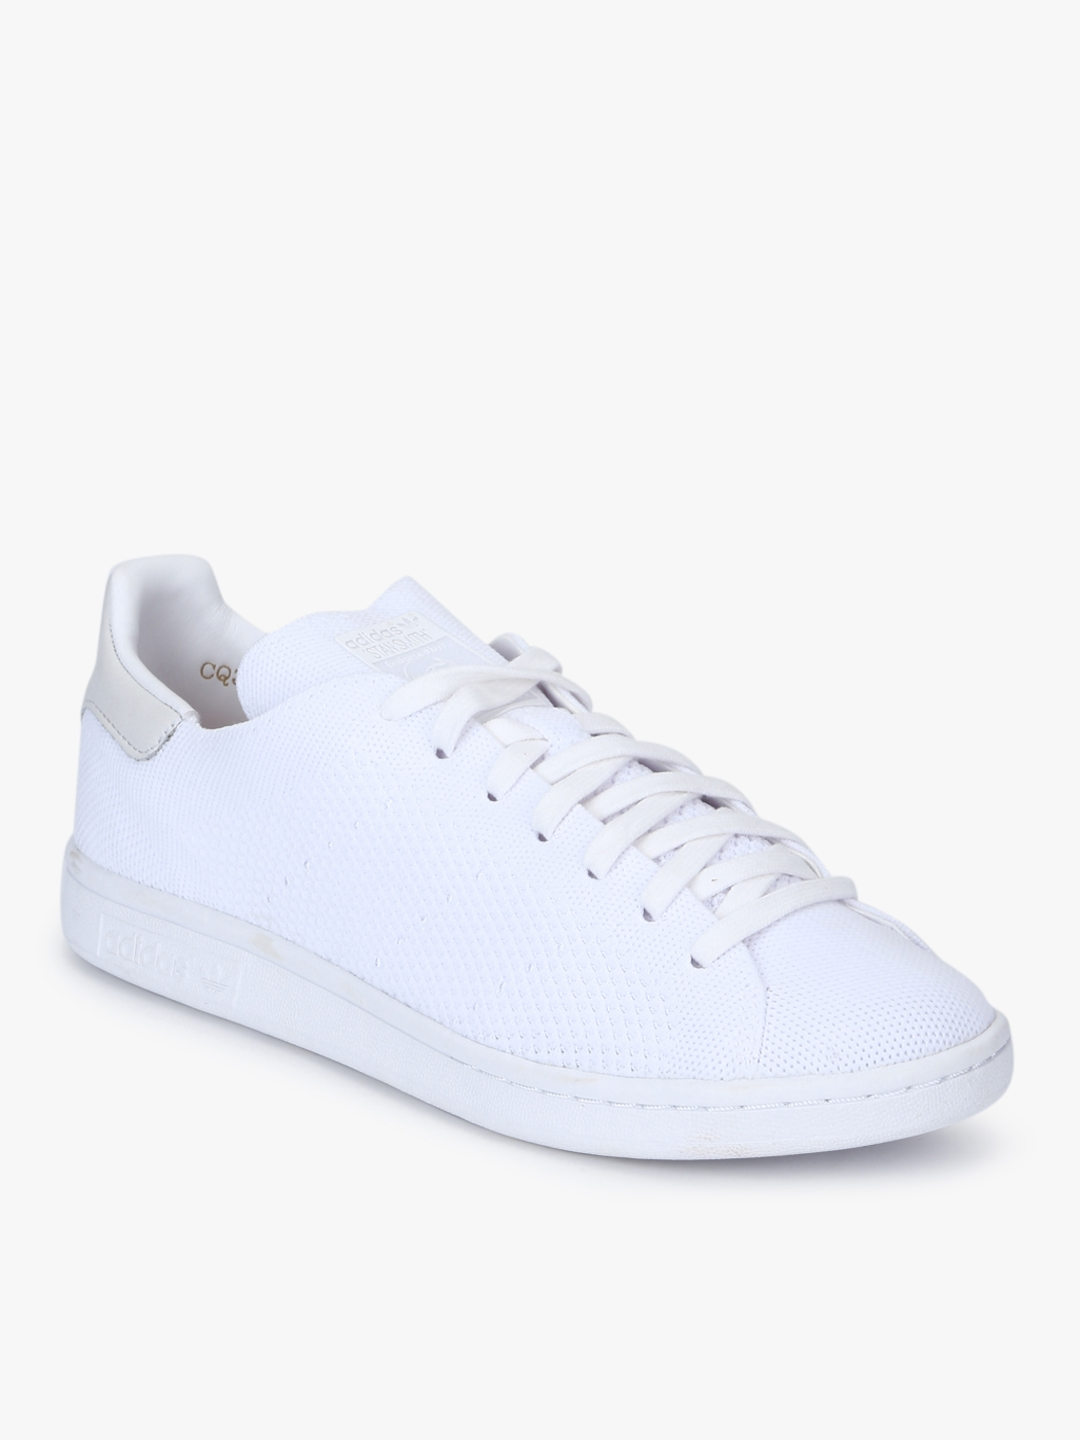 ec5c75cbad8 Buy Stan Smith Pk White Sneakers - Casual Shoes for Men 7682108